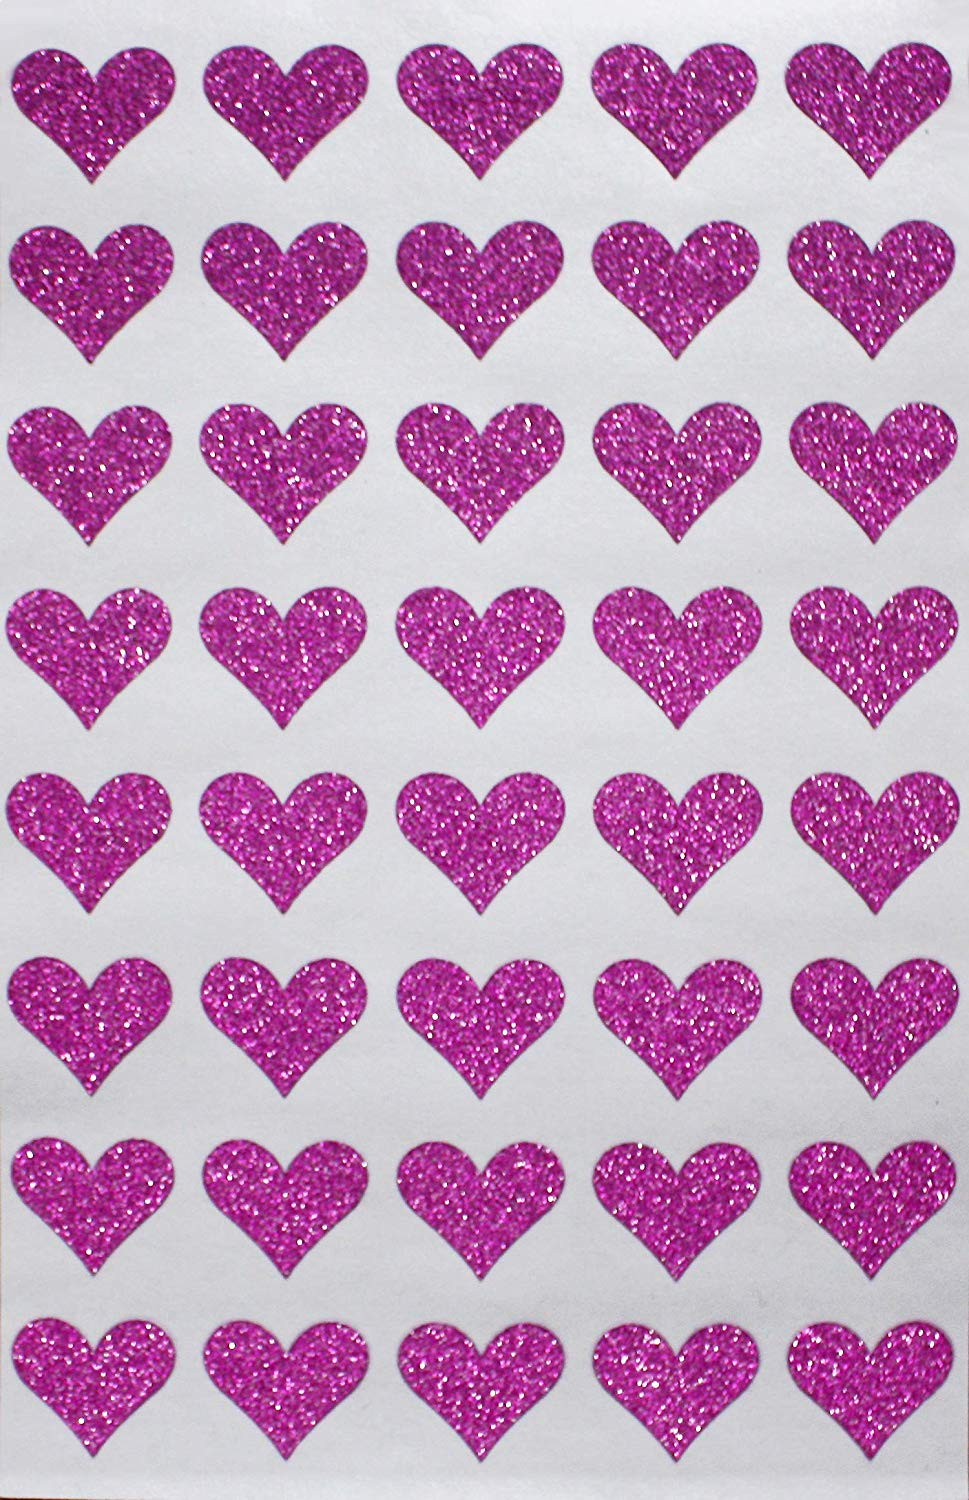 240 Stickers Total Valentines Day Heart Shaped Stickers Set